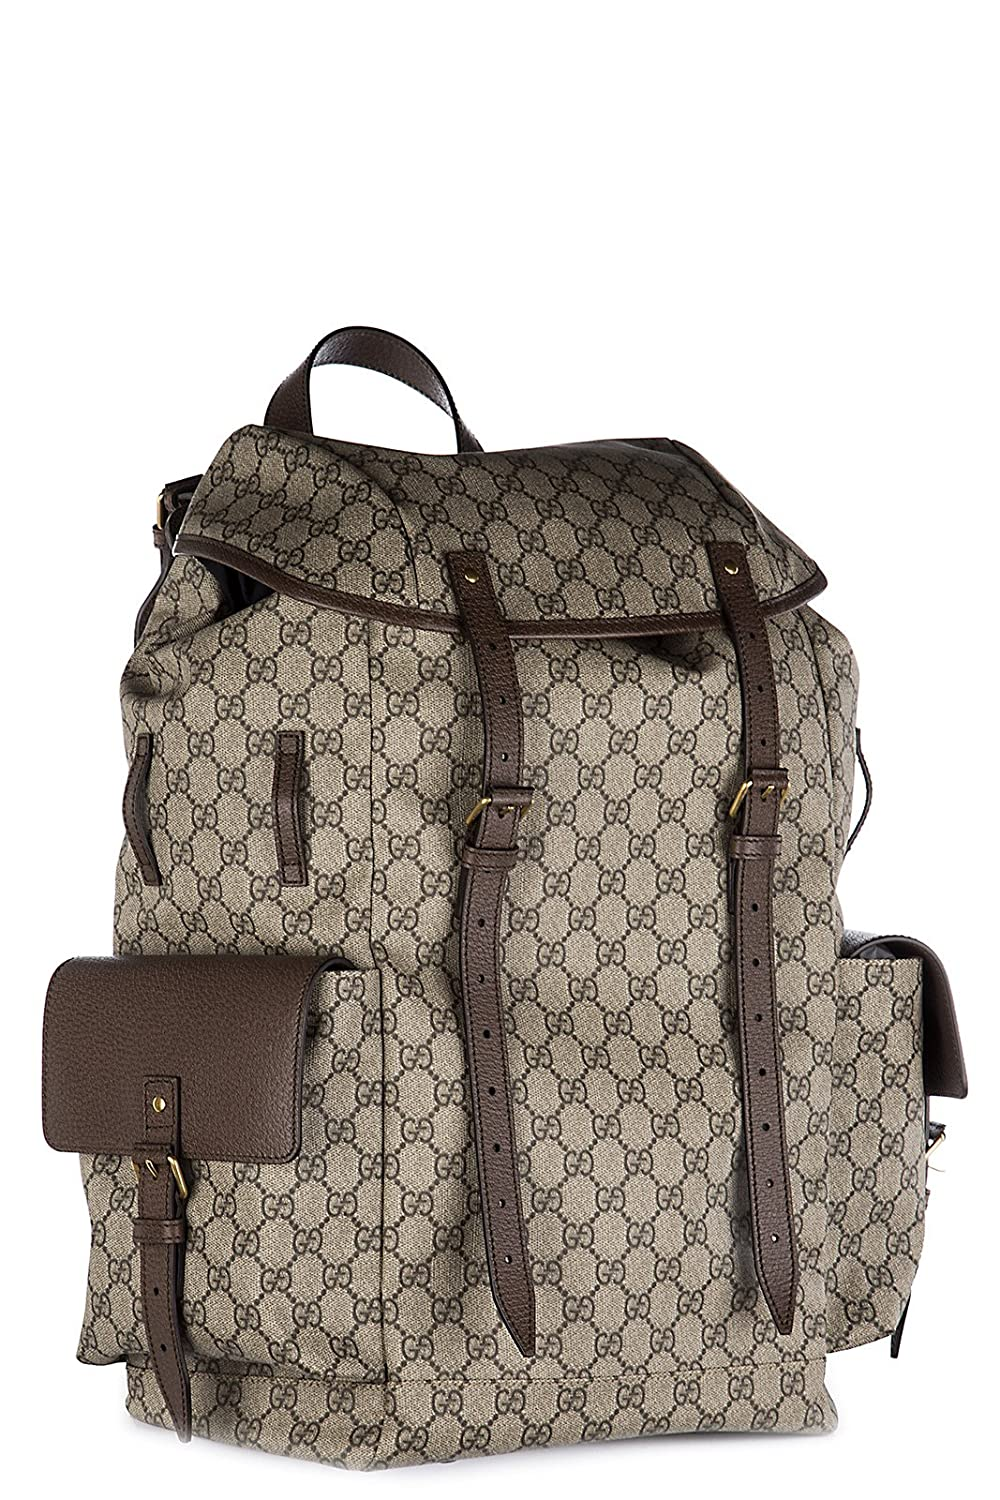 4e30597dc030 Gucci men s rucksack backpack travel GG supreme beige  Amazon.co.uk  Shoes    Bags